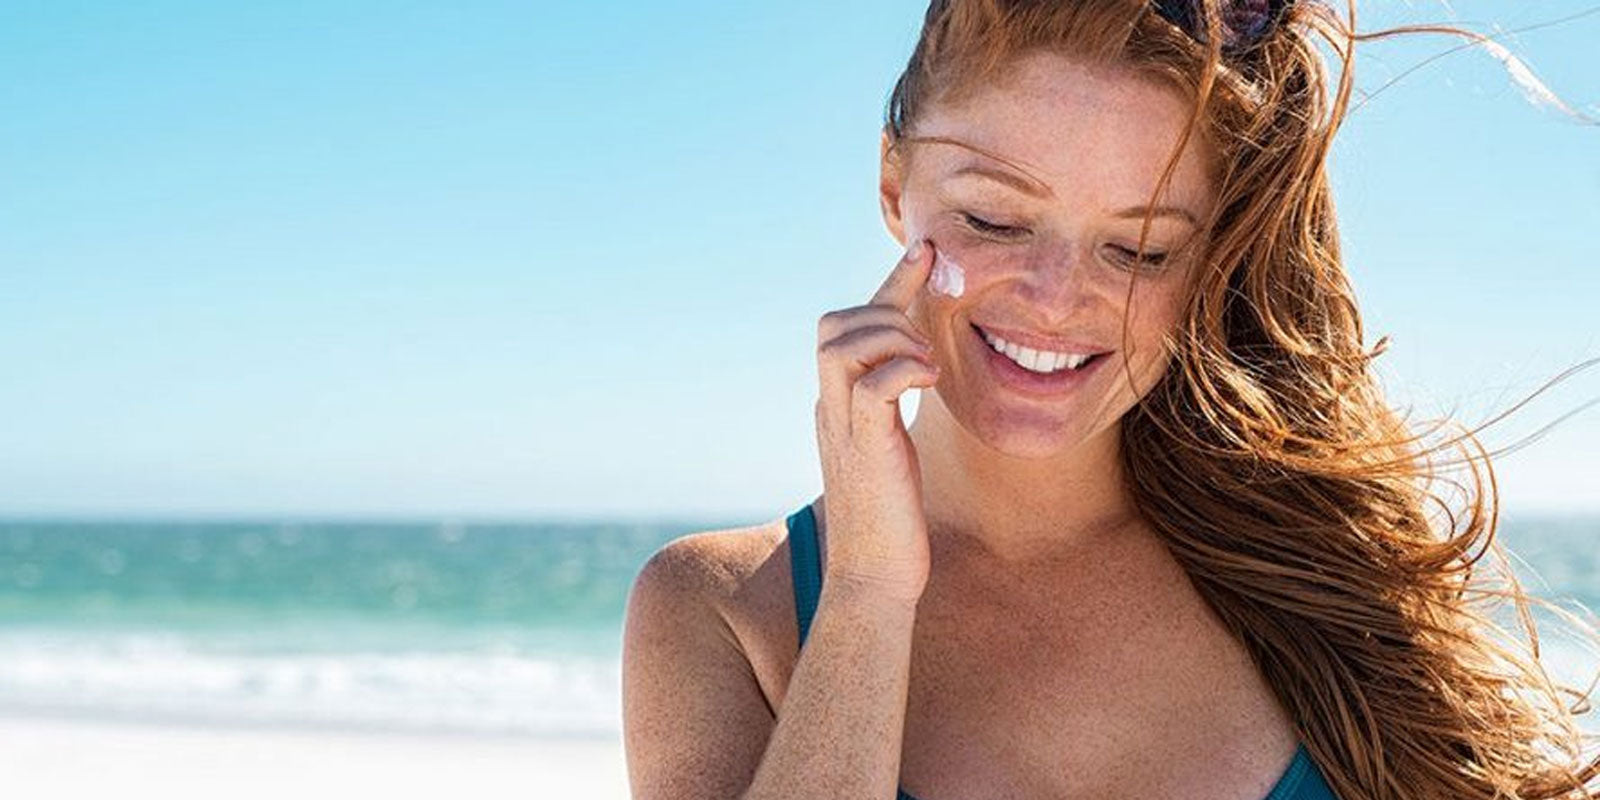 5 BENEFITS OF SUNSCREEN